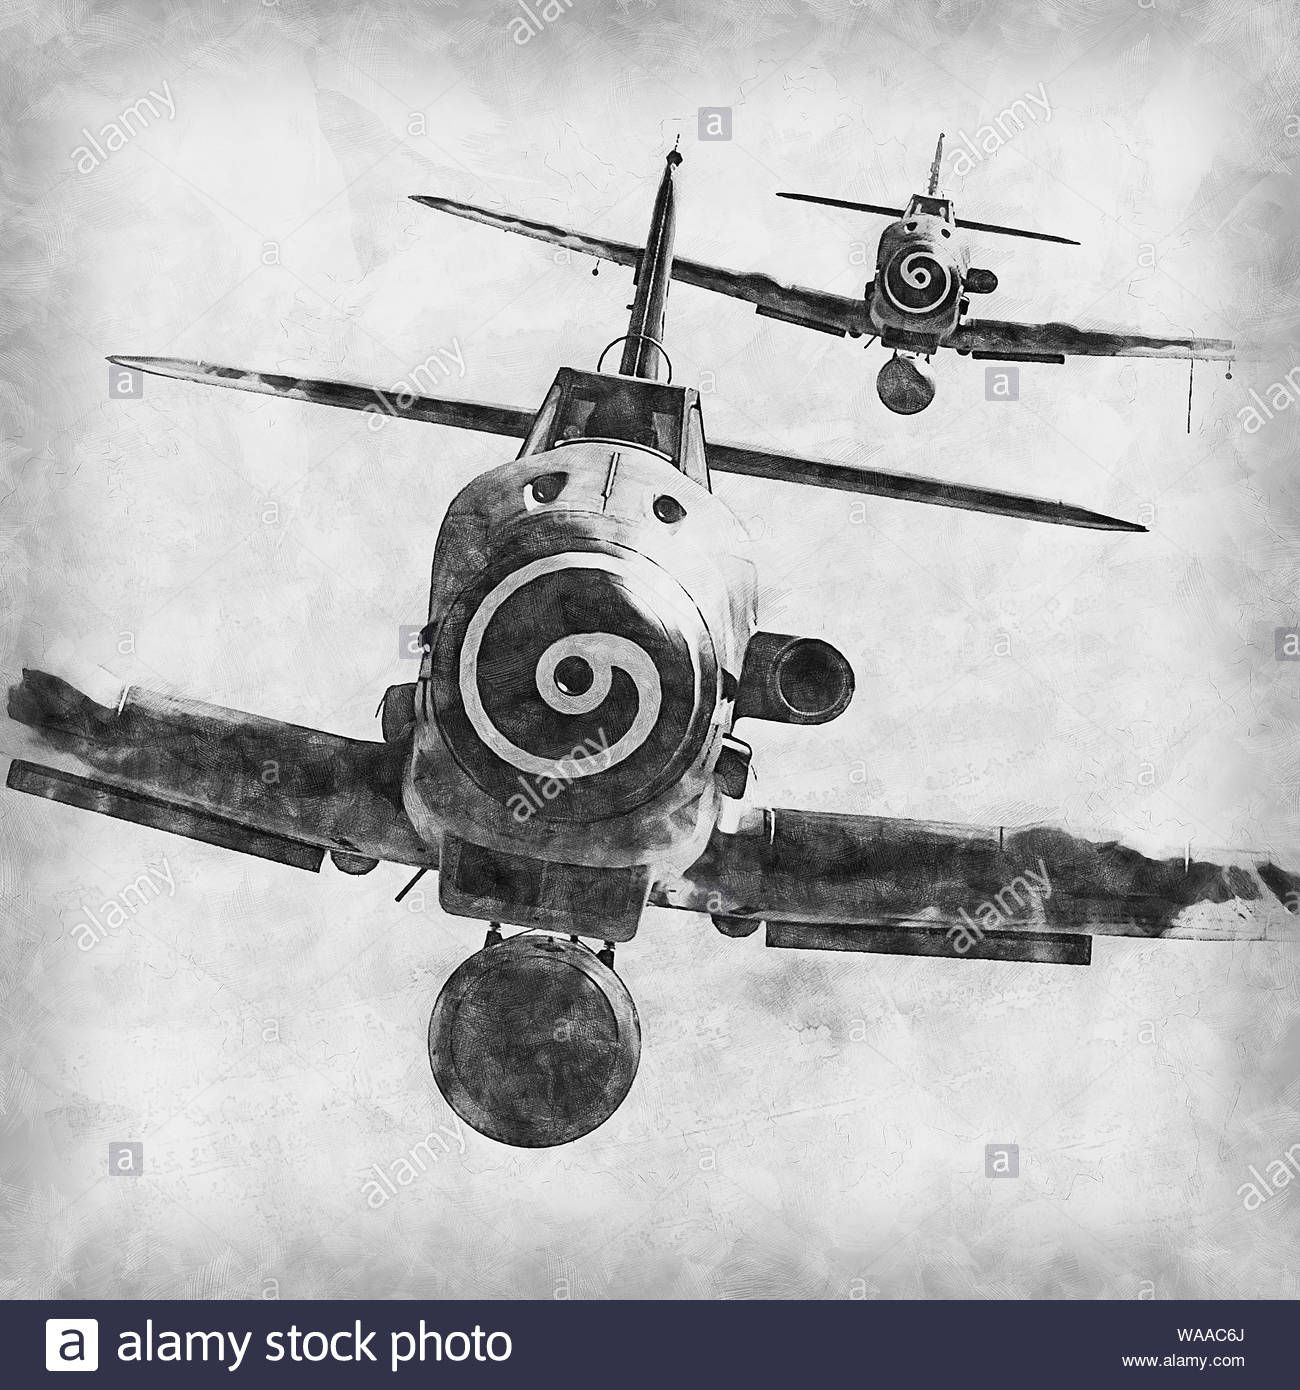 Download this stock image: The Messerschmitt Bf 109 is a German World War II fighter aircraft that was, along with the Focke-Wulf Fw 190, the backbone of the Luftwaffe - WAAC6J from Alamy's library of millions of high resolution stock photos, illustrations and vectors.